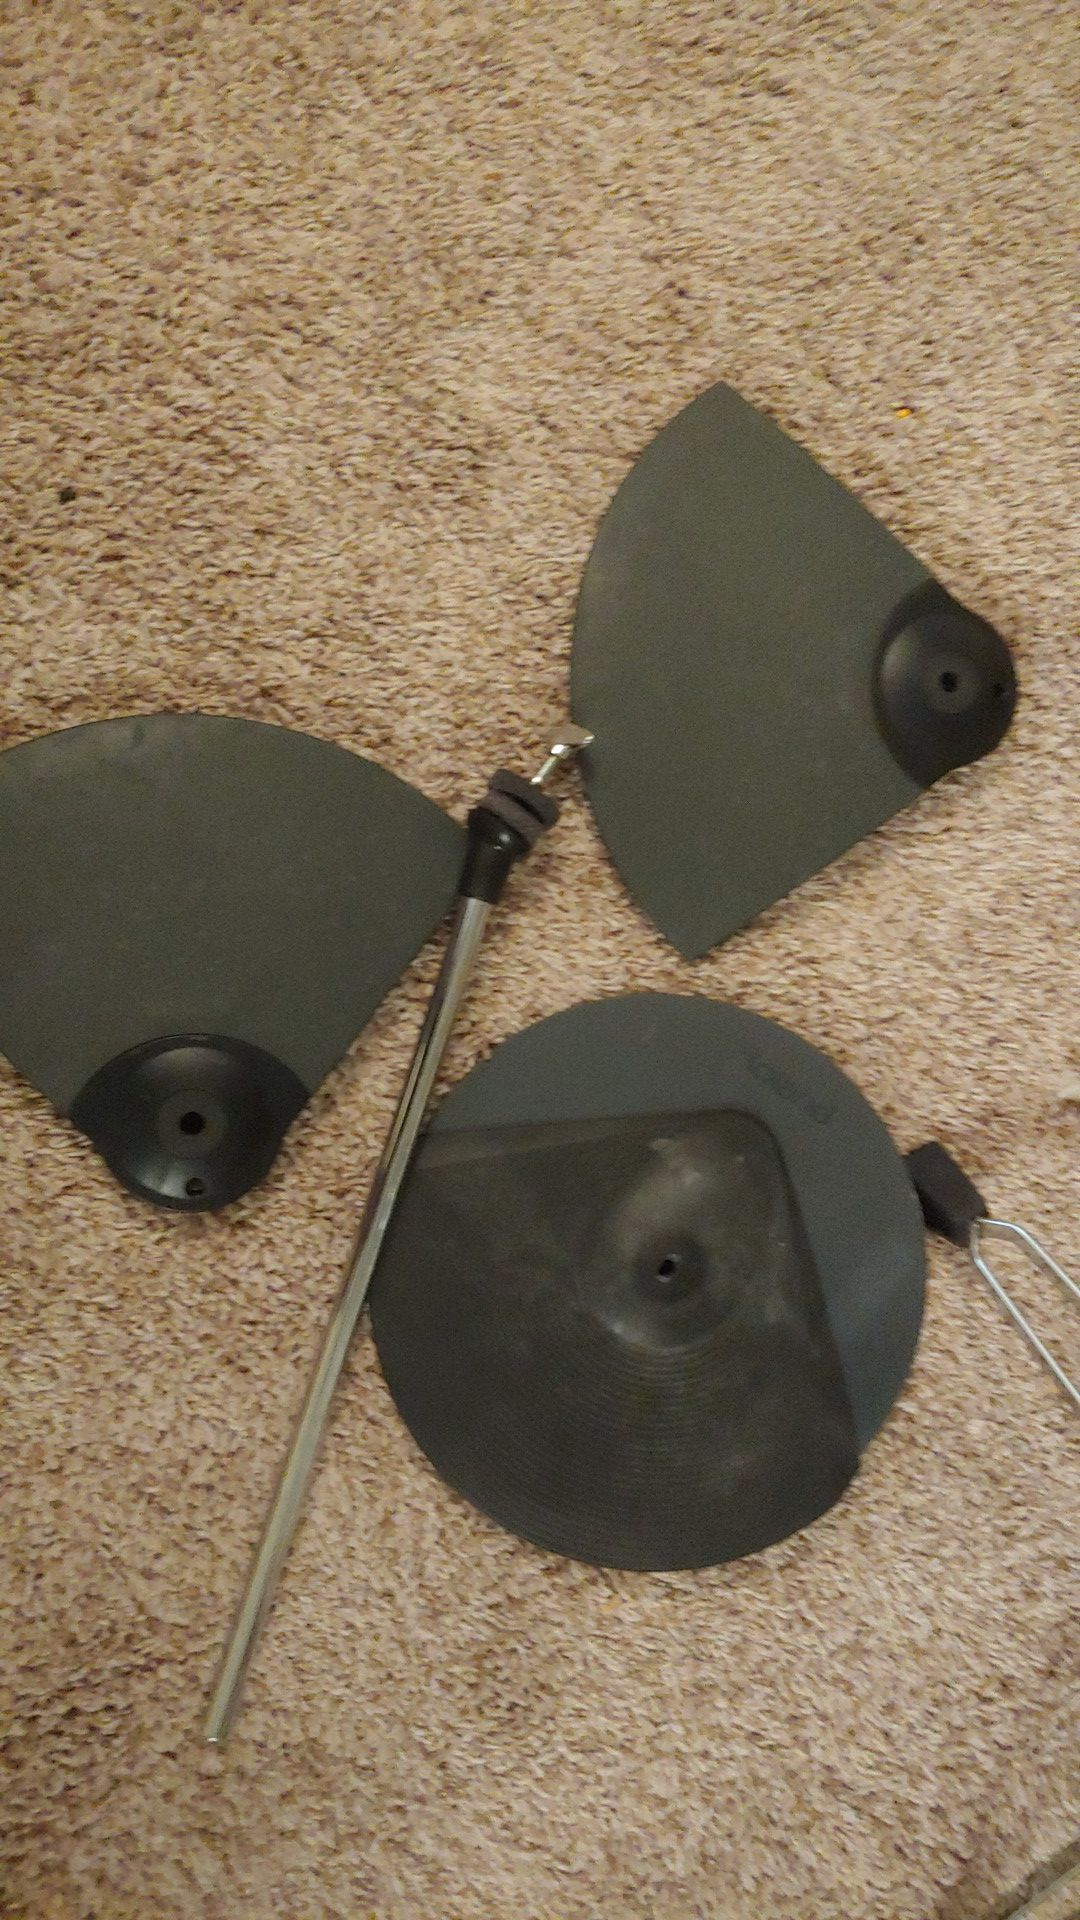 Yamaha electric drum cymbal, and mount. Roland CY-6